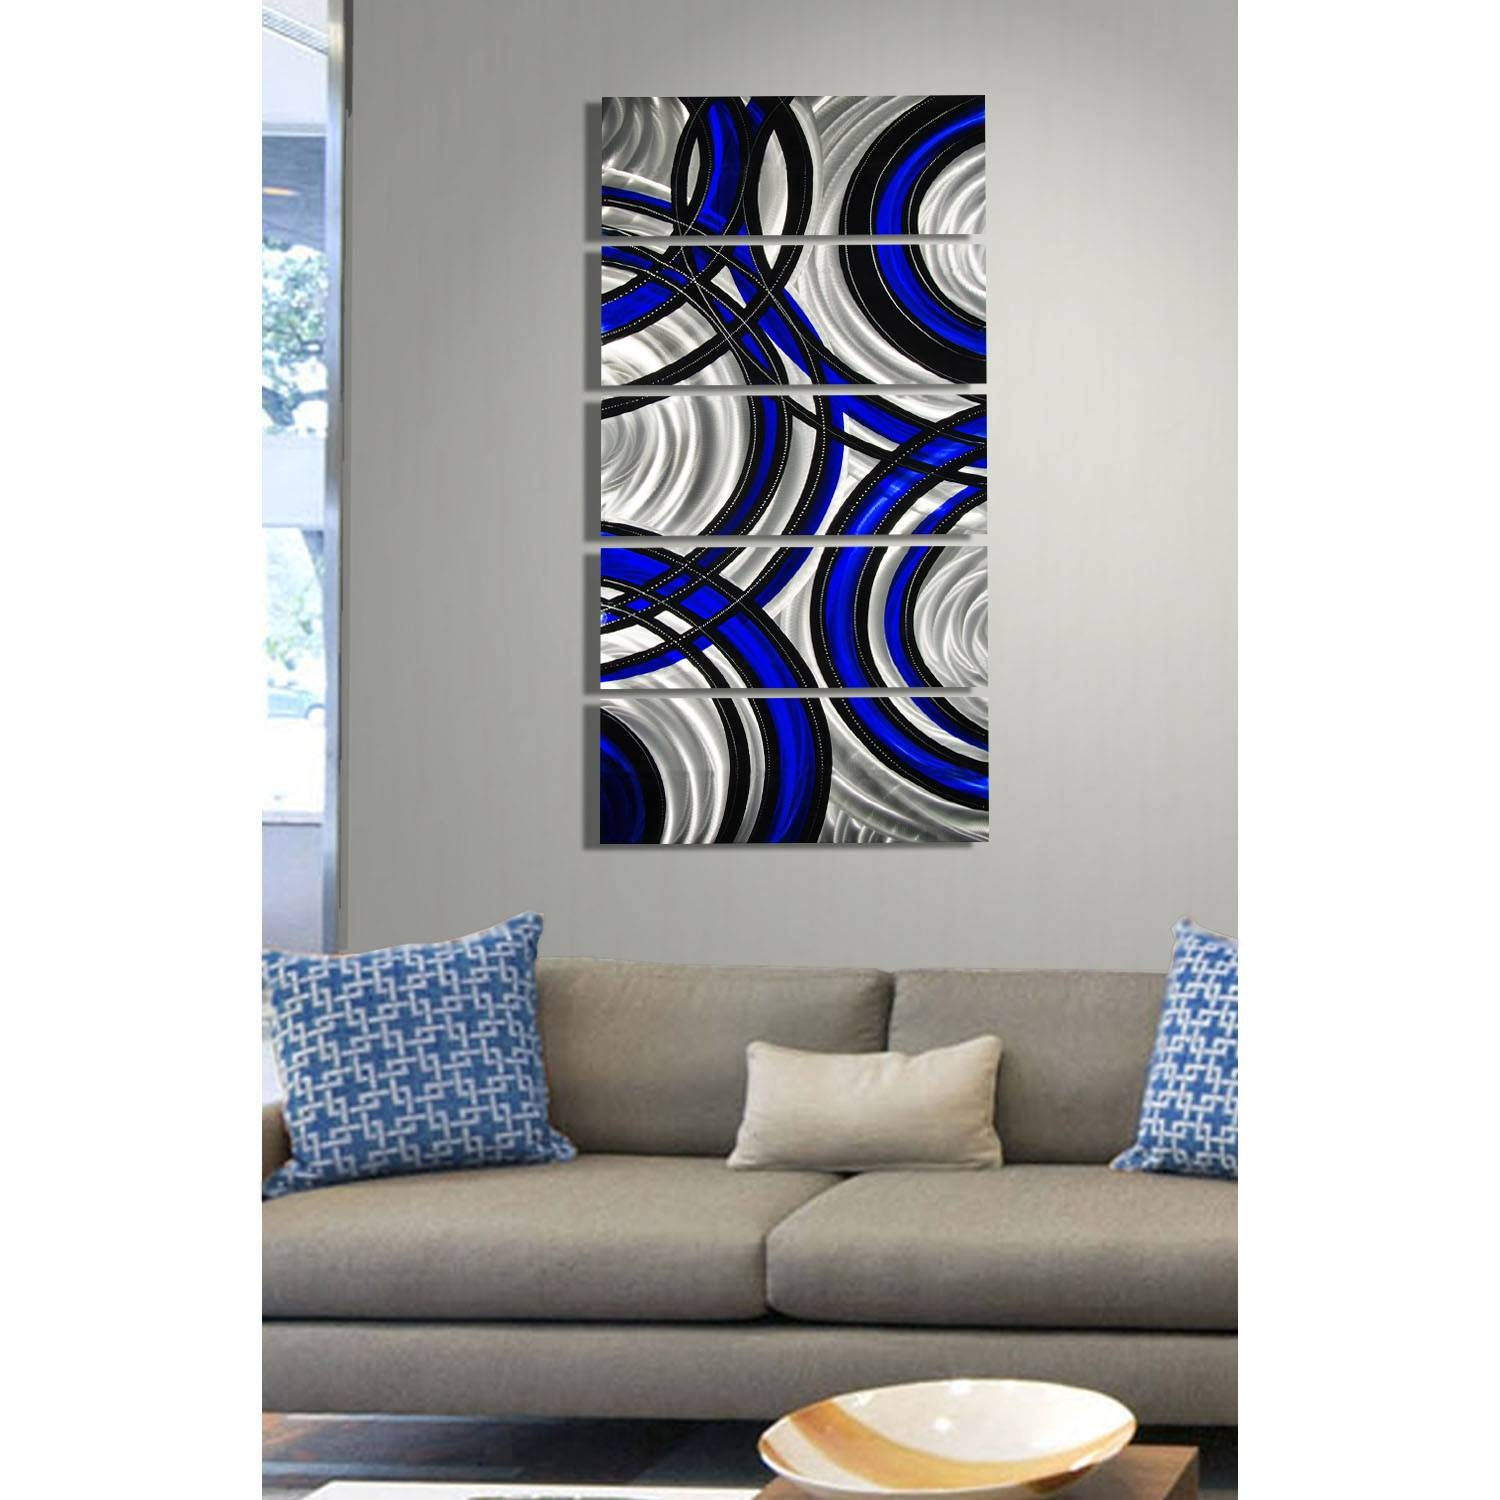 Blue Synergy – Blue, Black And Silver Metal Wall Art – 5 Panel For Most Up To Date Blue And Silver Wall Art (View 9 of 20)